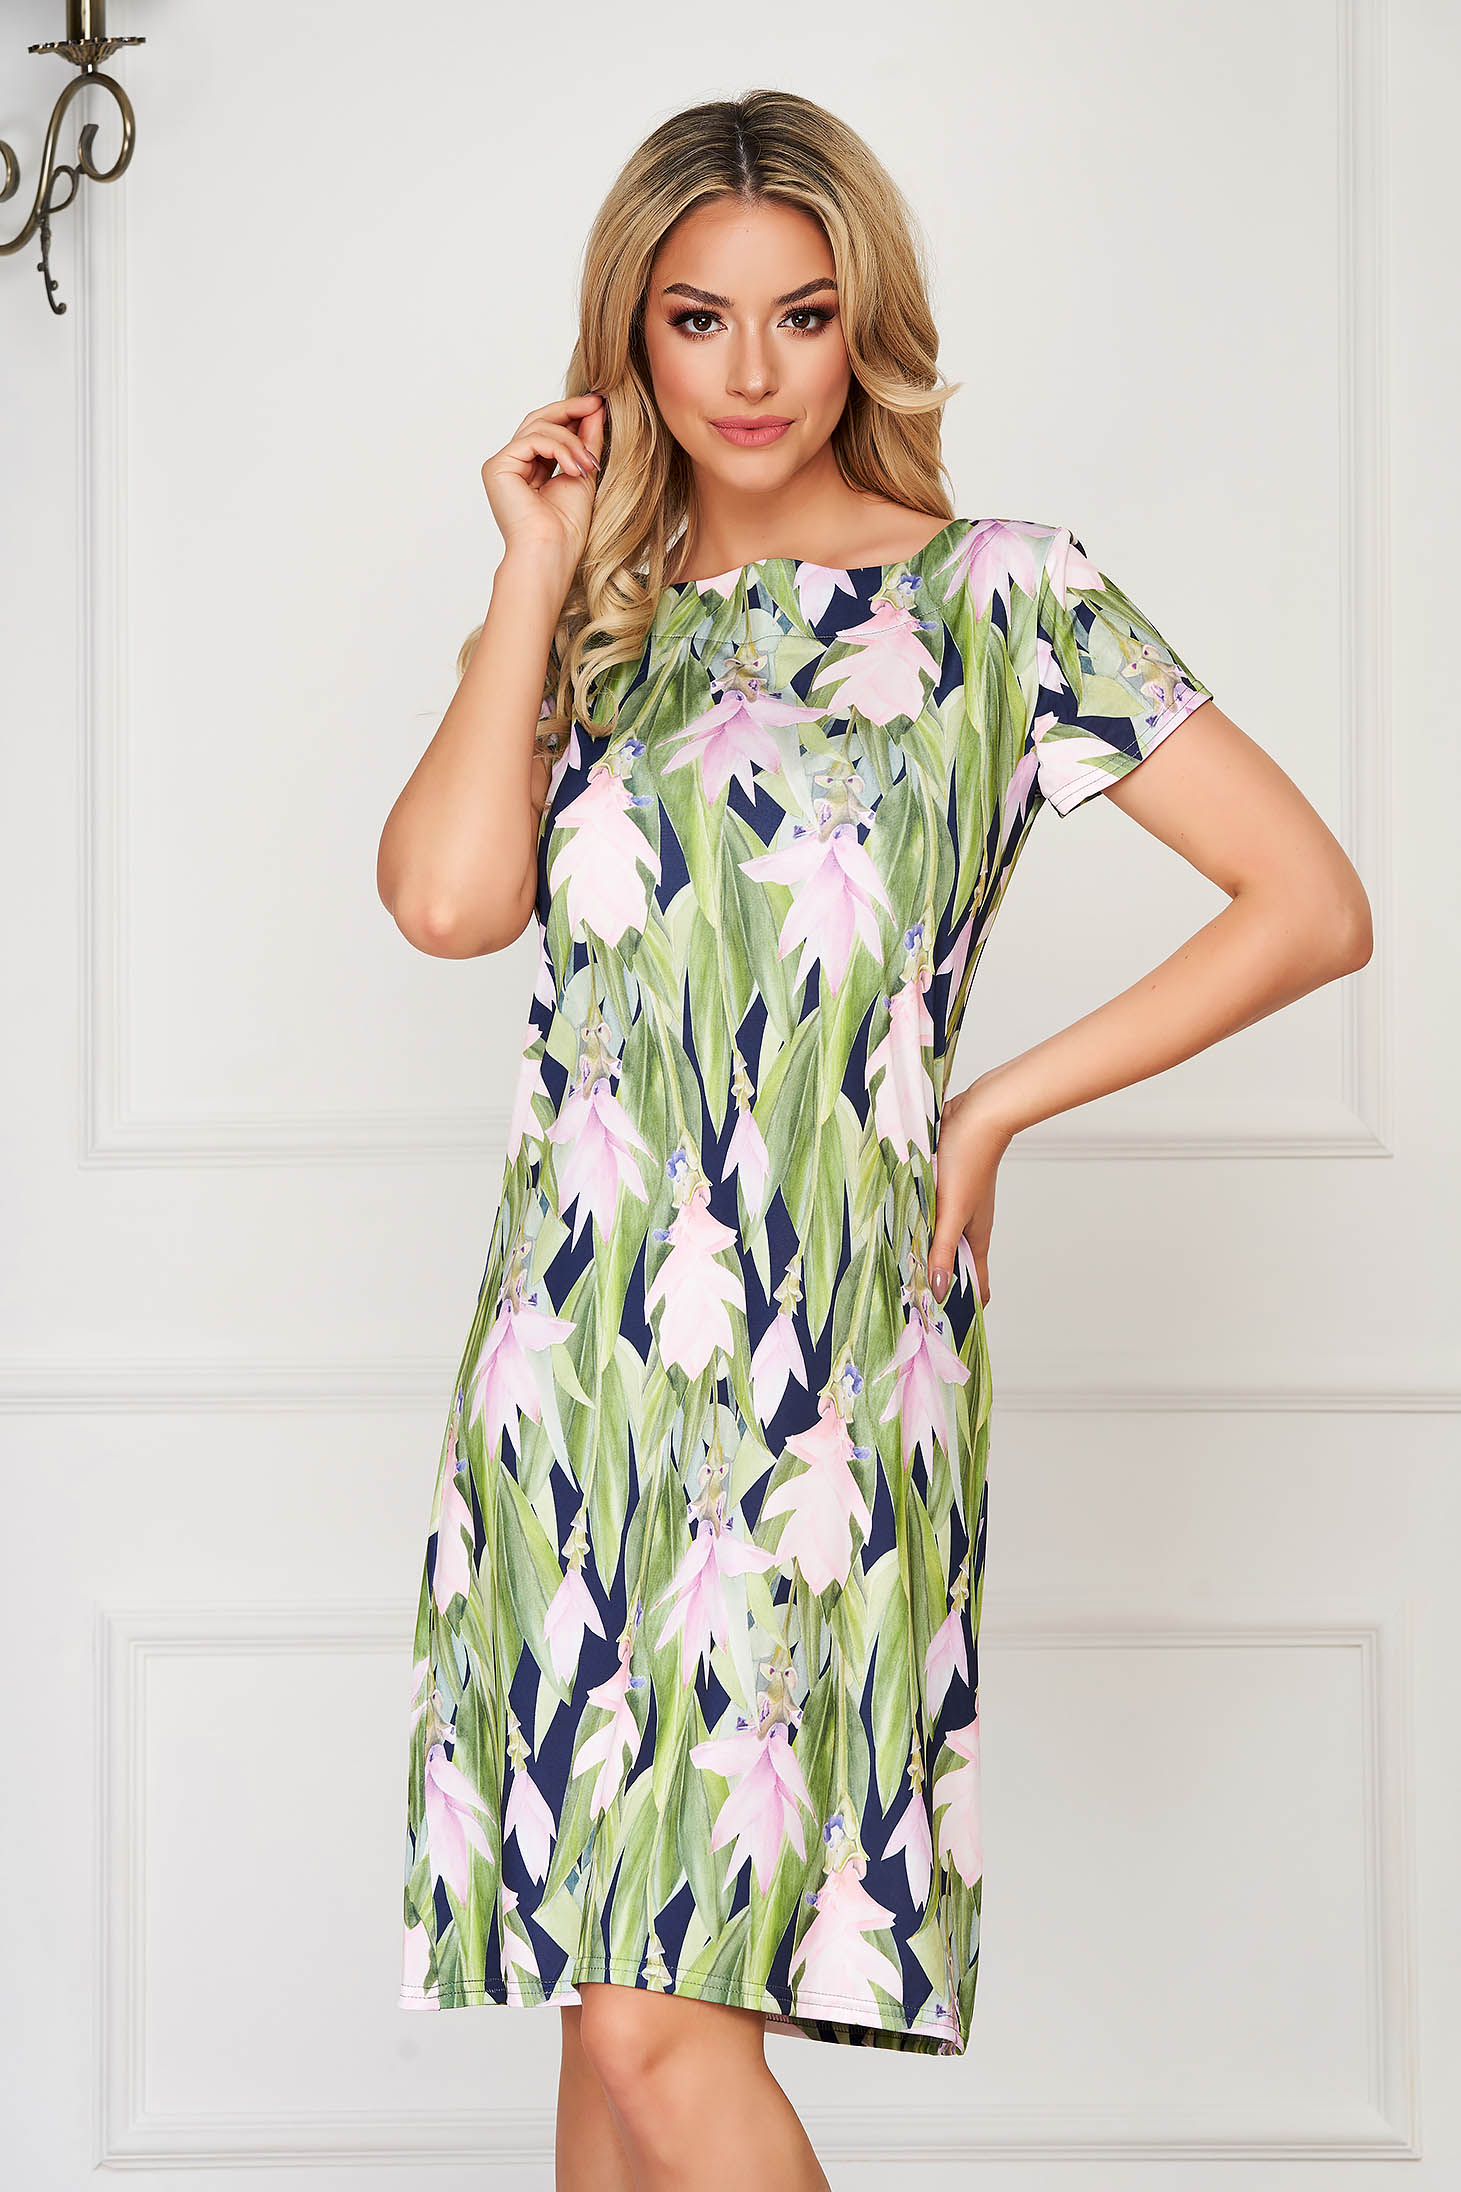 StarShinerS green dress short cut daily lycra with tented cut short sleeves